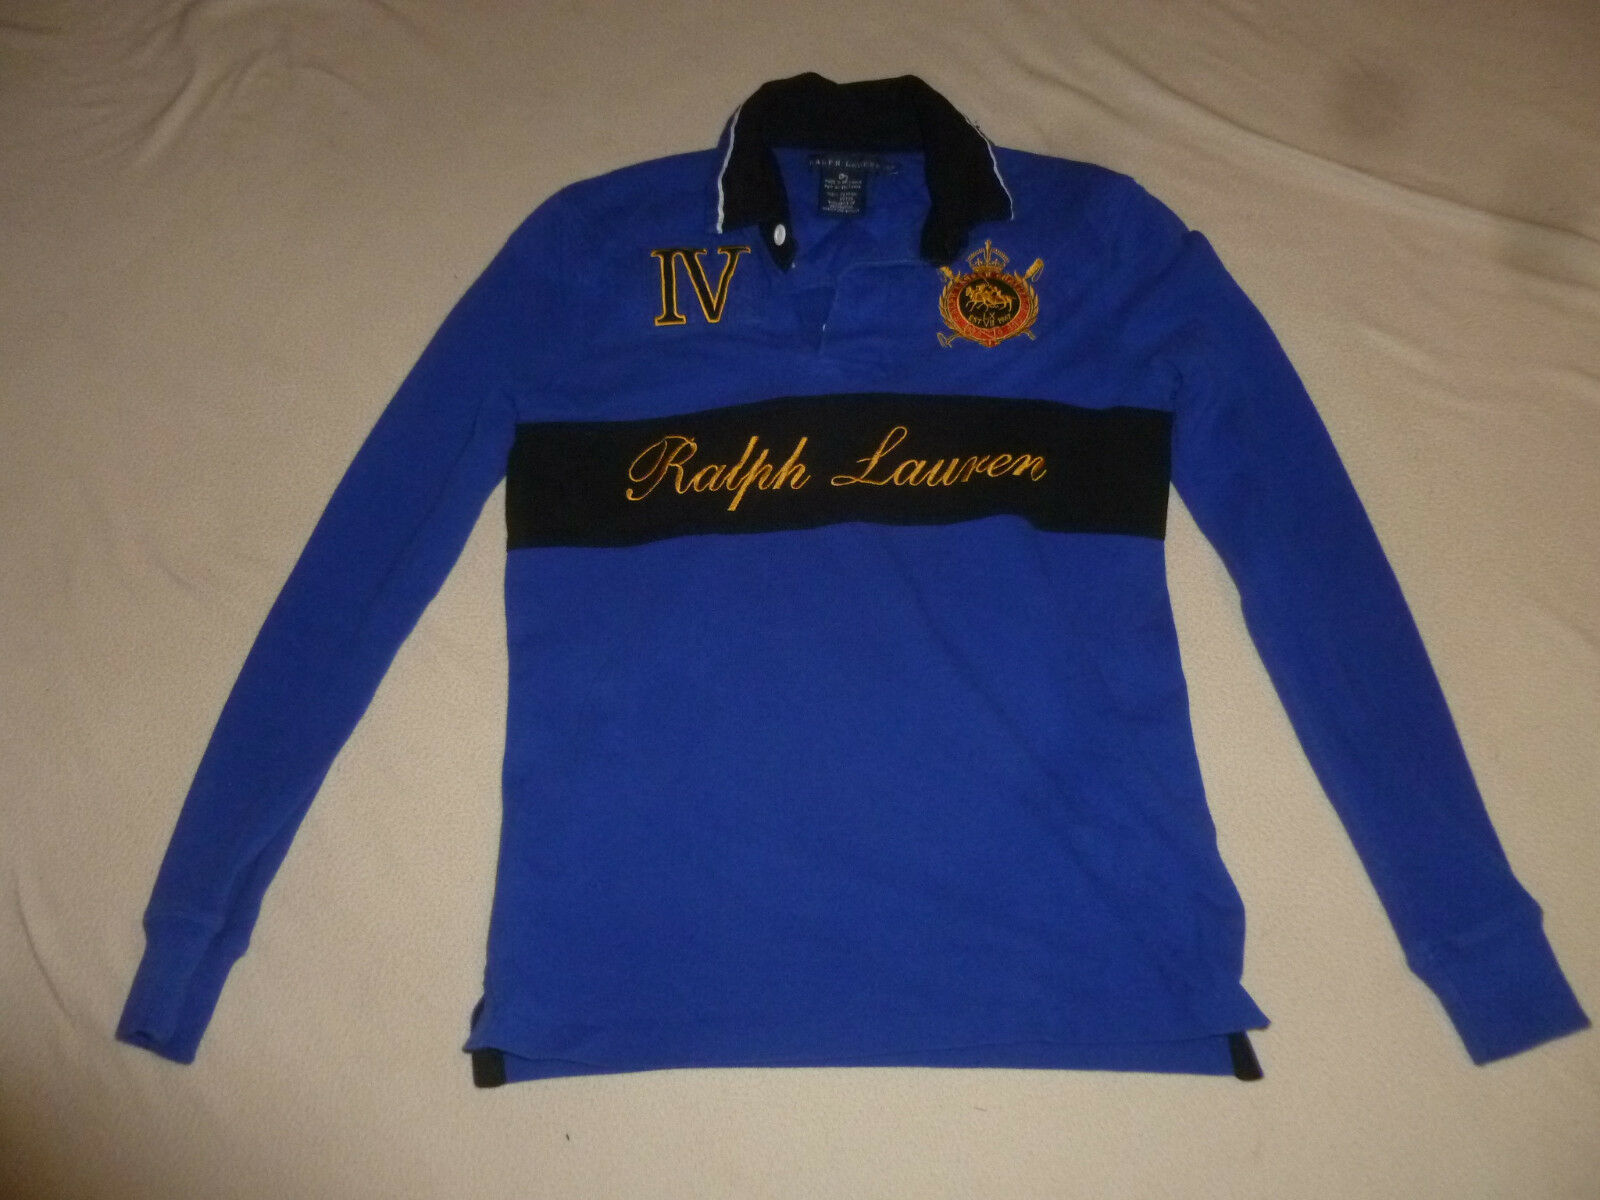 POLO RALPH LAUREN CHALLENGE CUP IV LONG SLEEVE SHIRT SIZE S MENS VINTAGE blueE